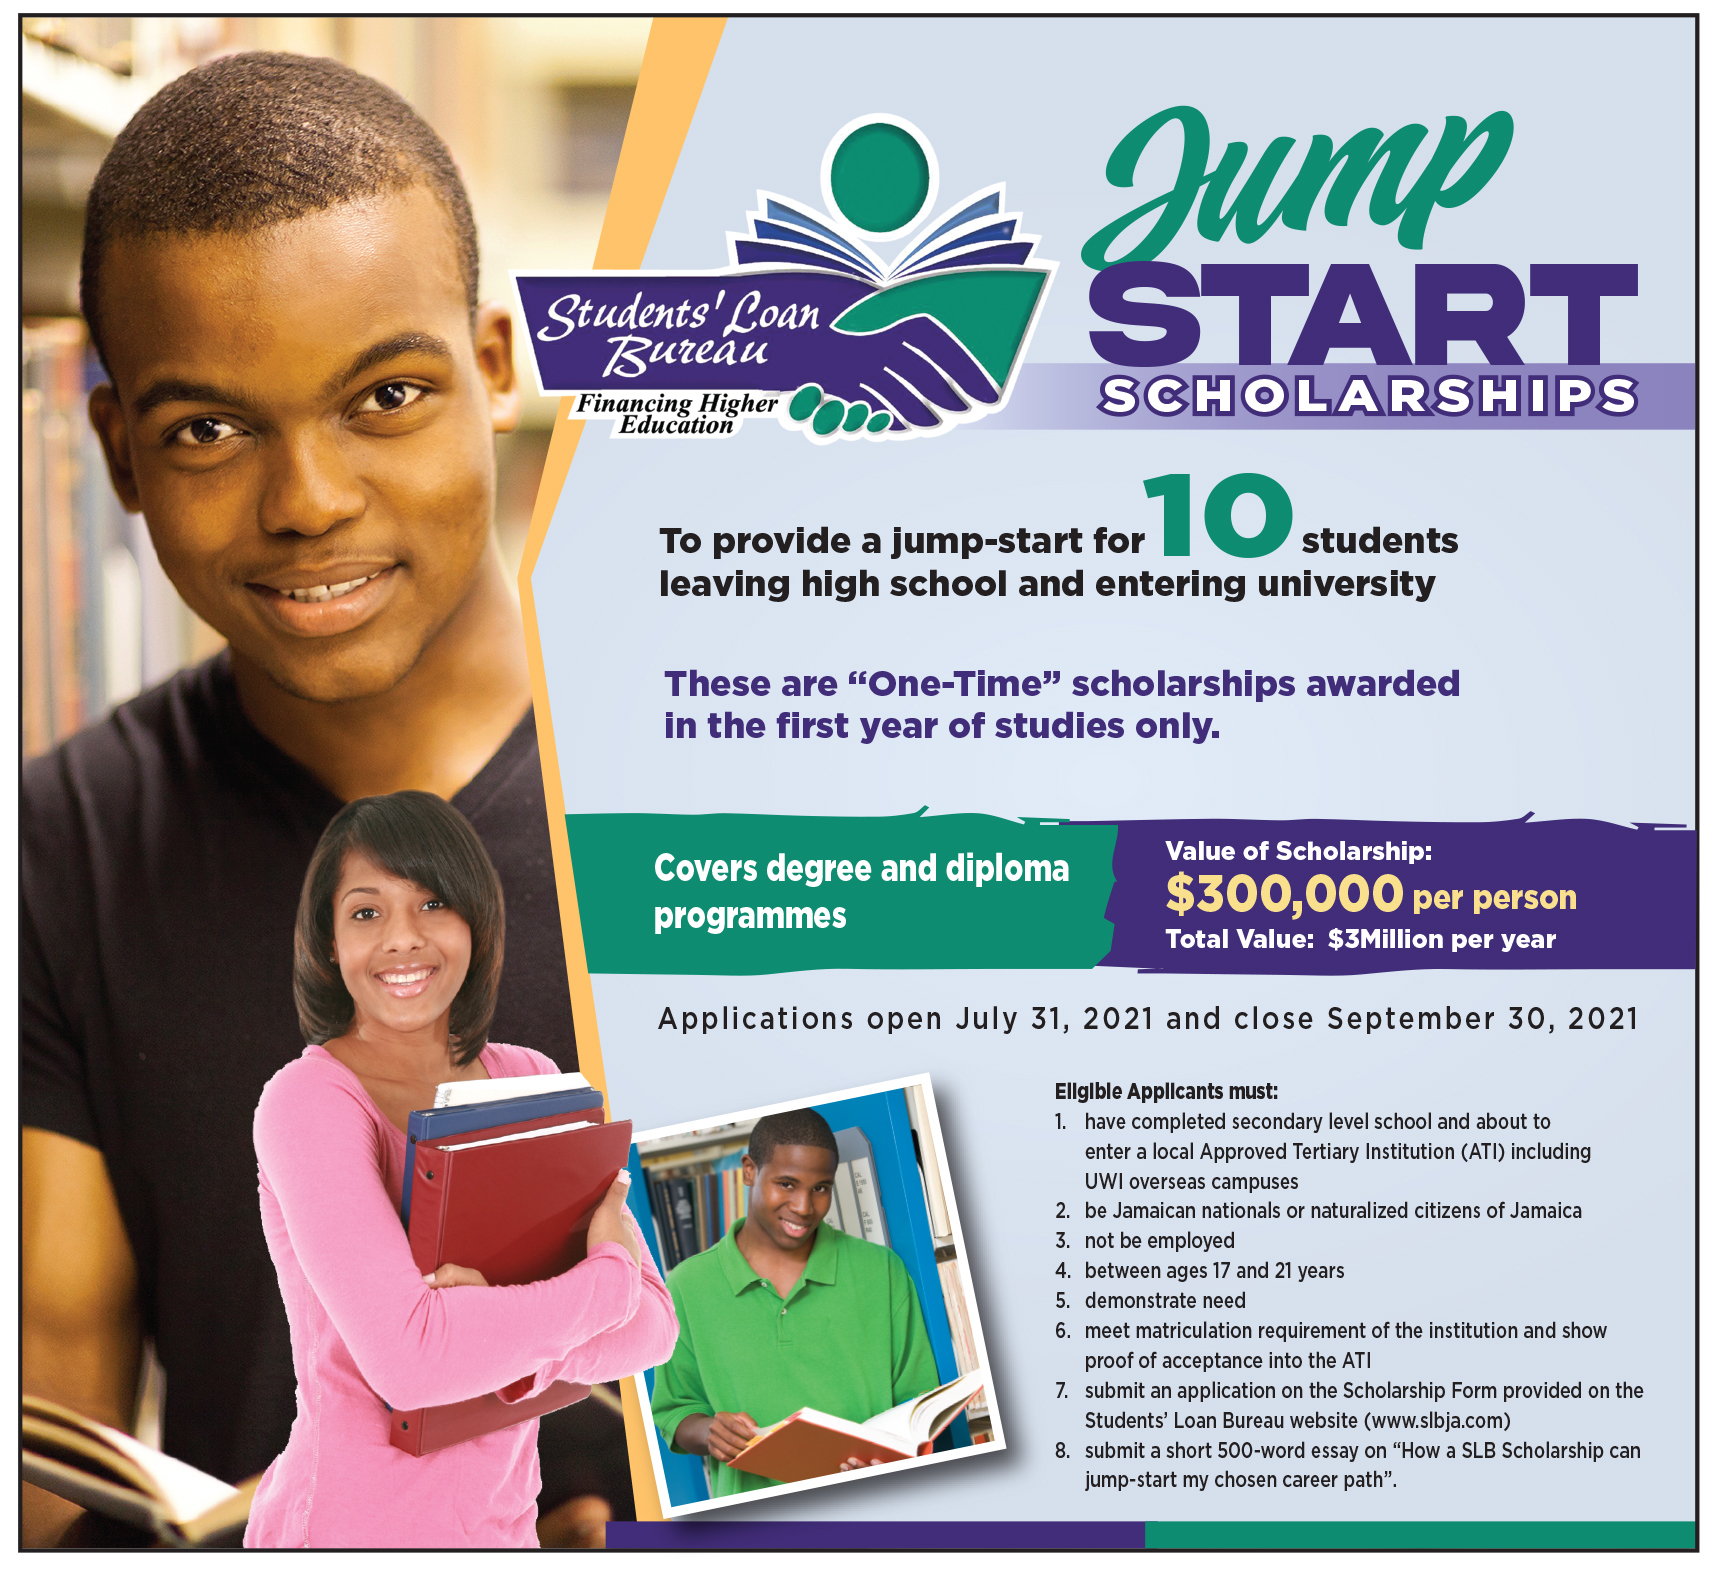 The Students' Loan Bureau (SLB) is reminding persons that the deadline to apply for the SLB Jump-Start Scholarship is September 30, 2021.